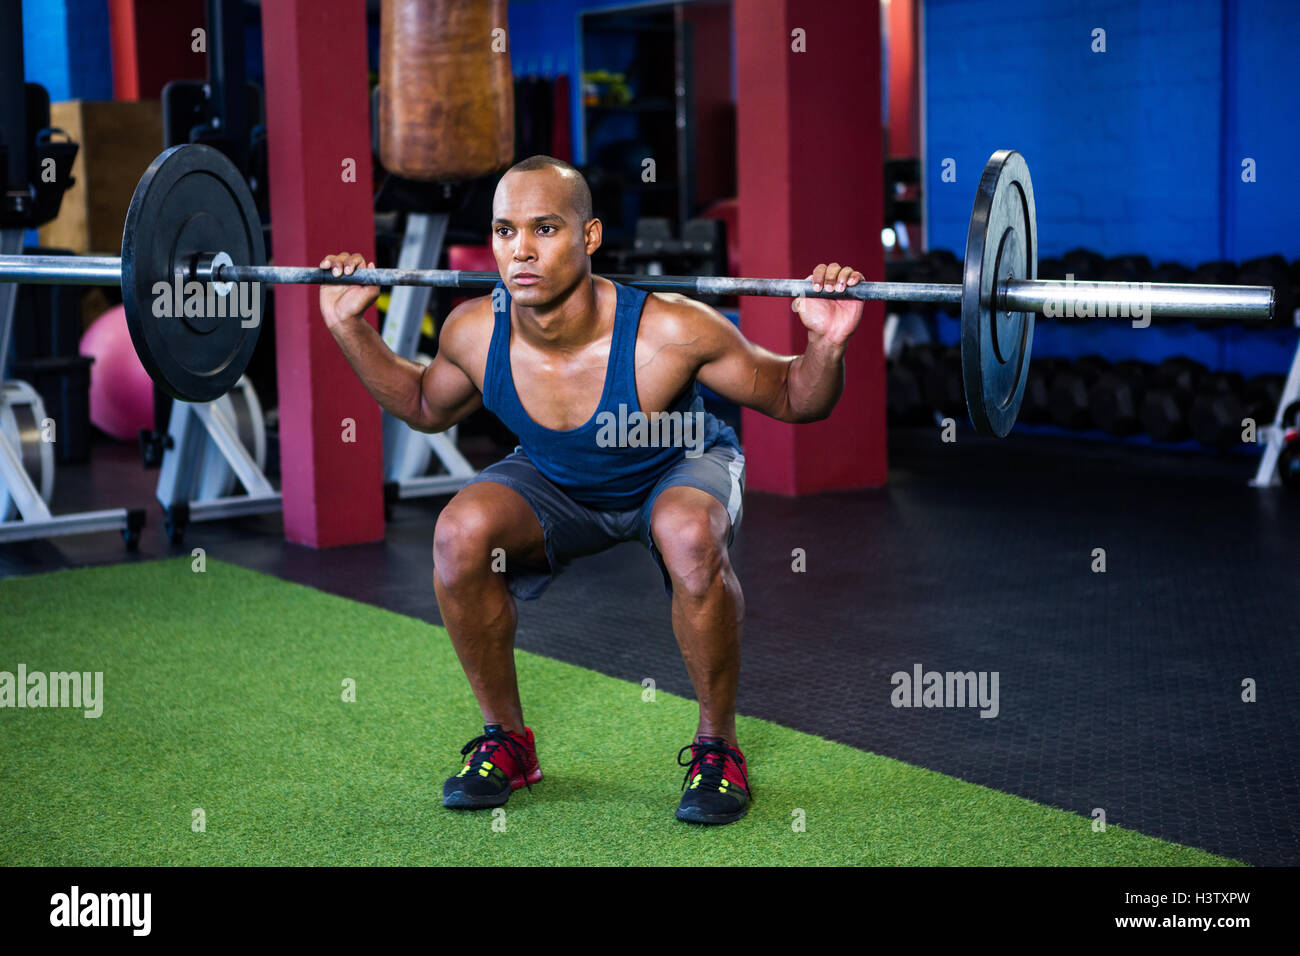 Young man weightlifting in fitness studio - Stock Image